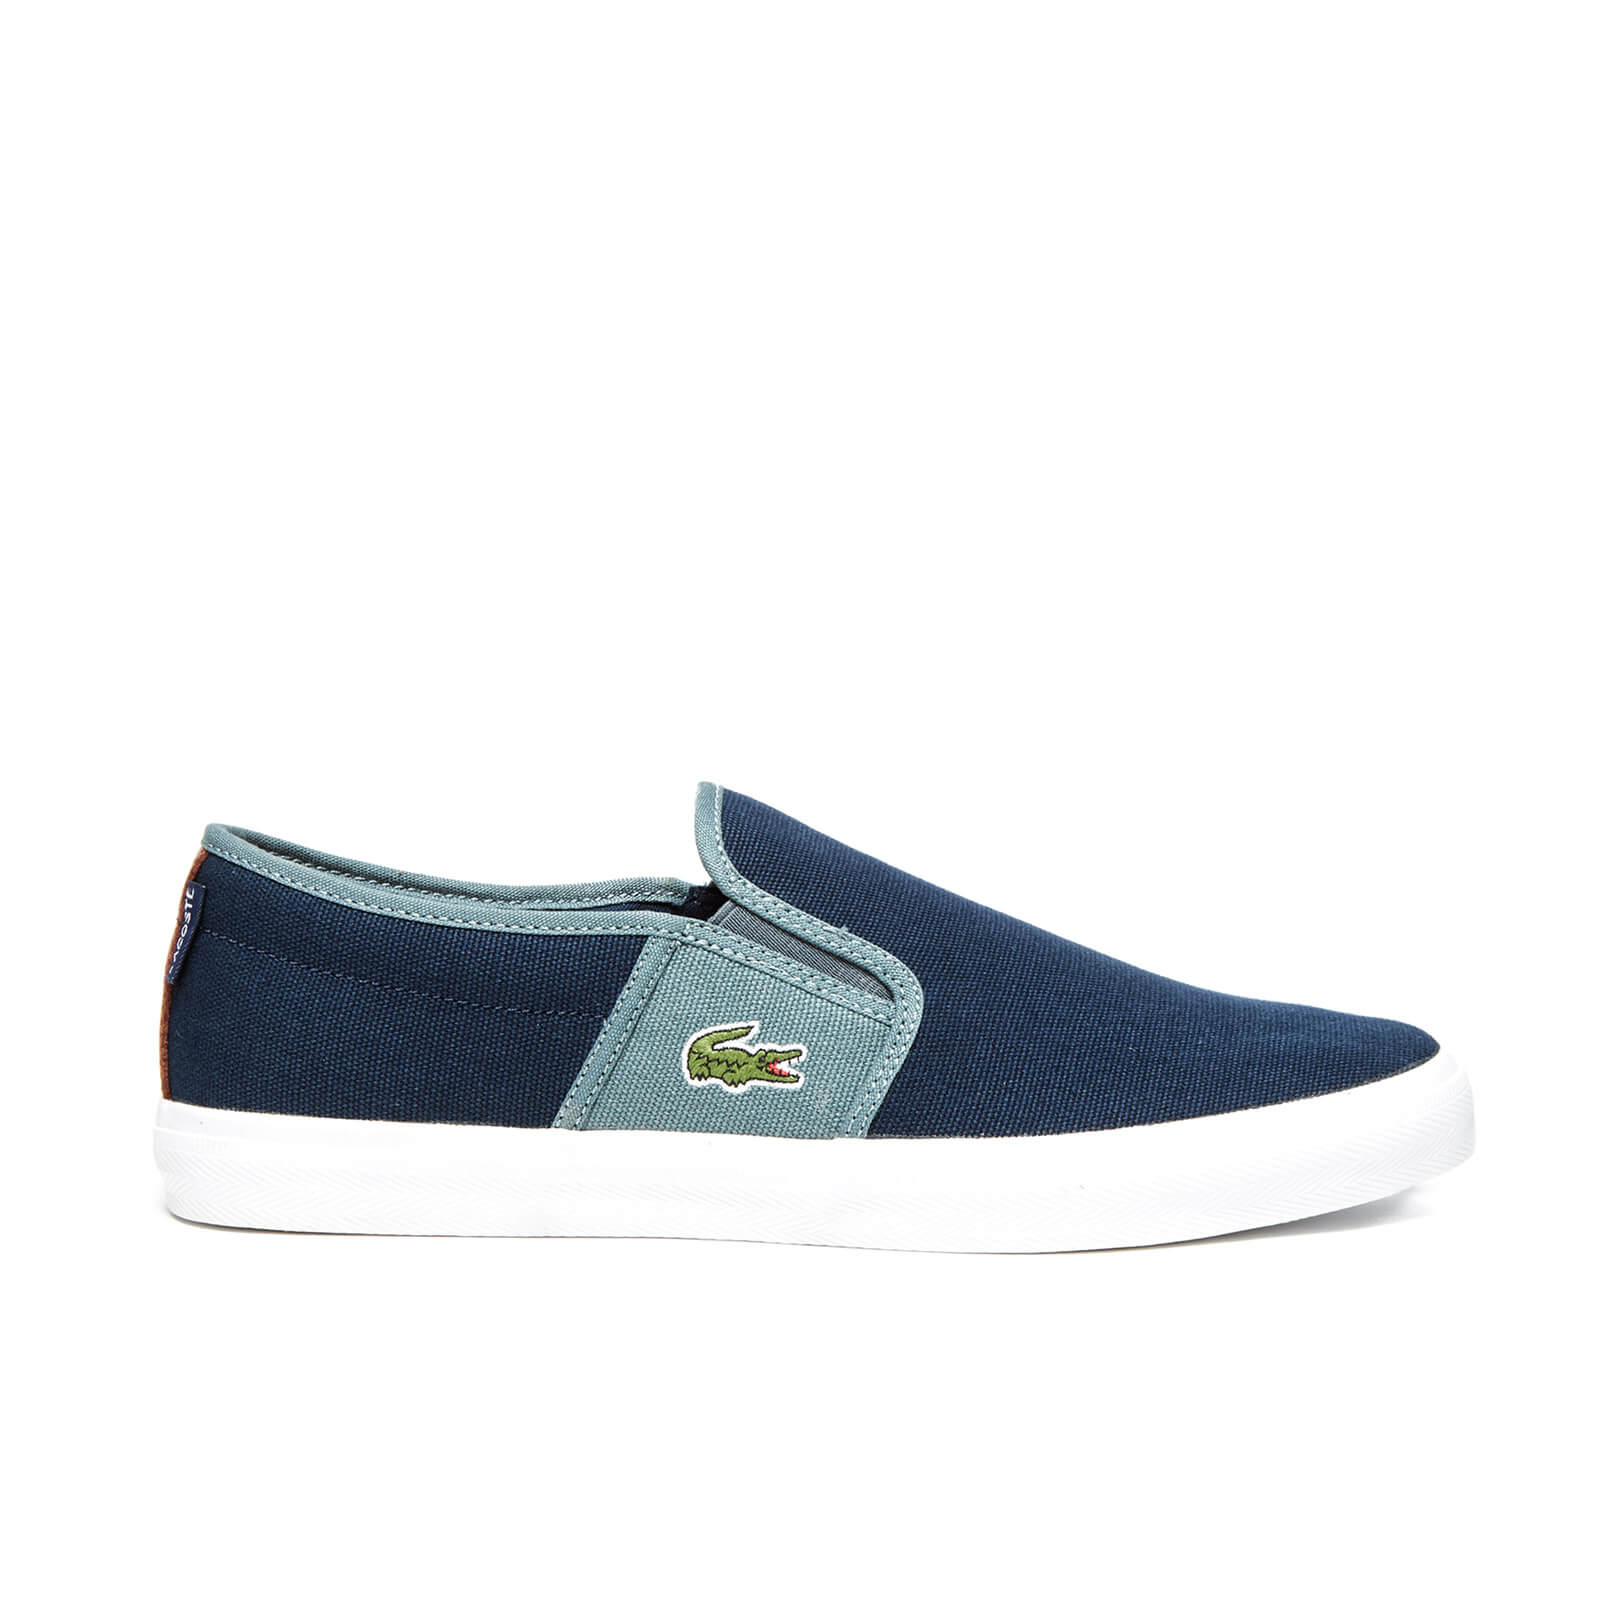 5b0c1f1fa4734d Lacoste Men s Gazon Sport SEP Canvas Slip On Trainers - Dark Blue Grey -  Free UK Delivery over £50